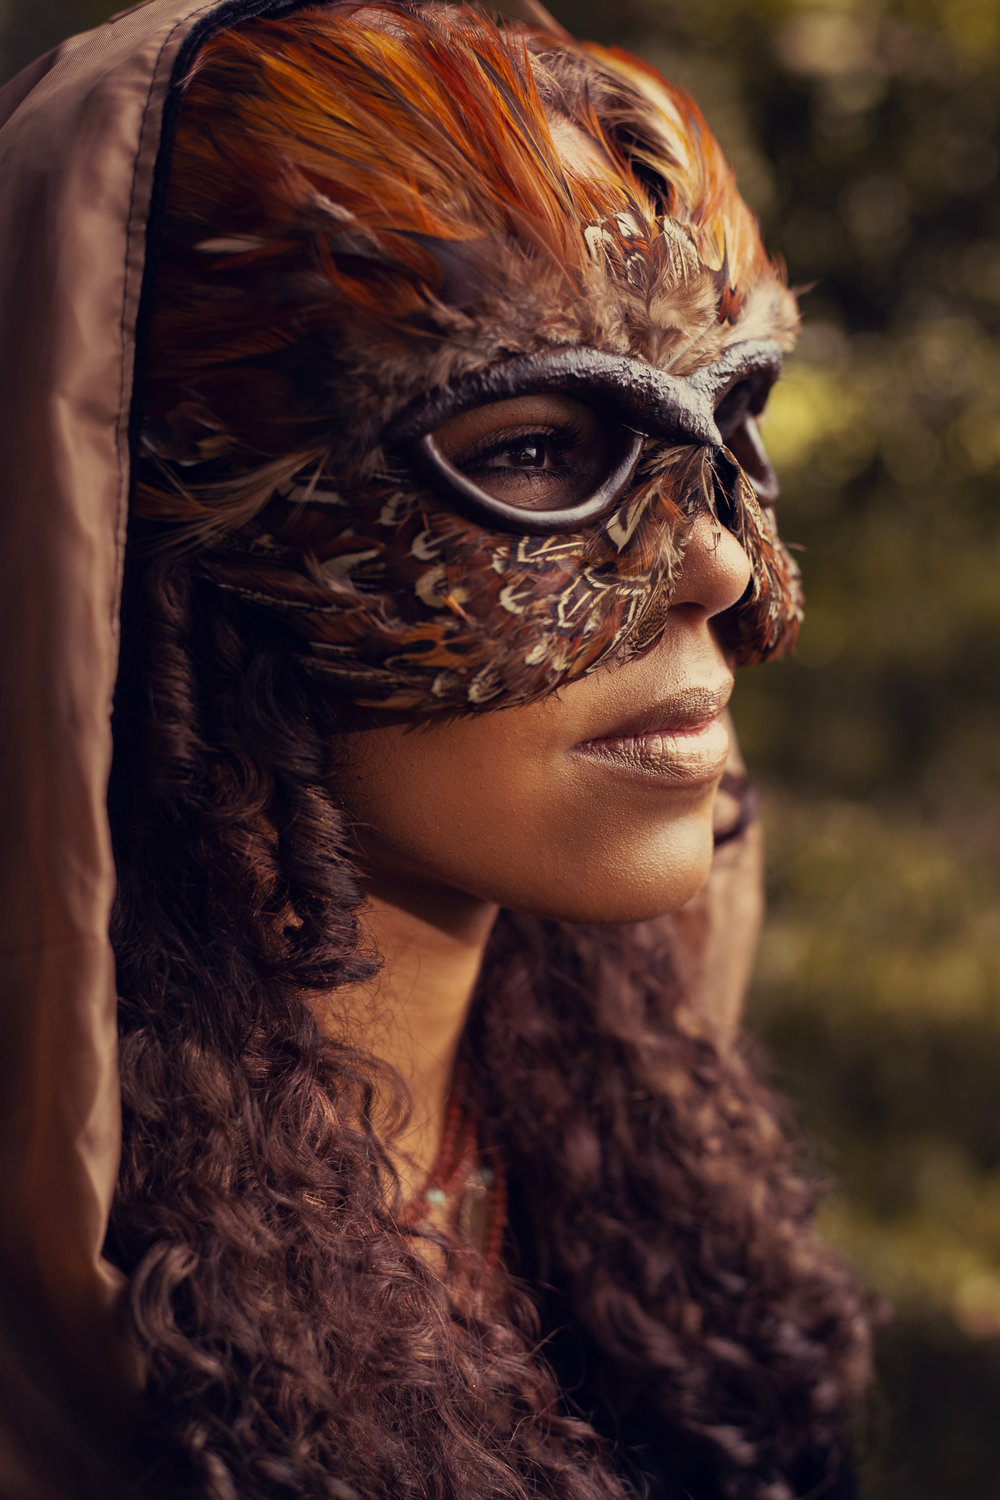 Masked Feathers of Autumn - Chamber Photography Moments by Antoine Hart